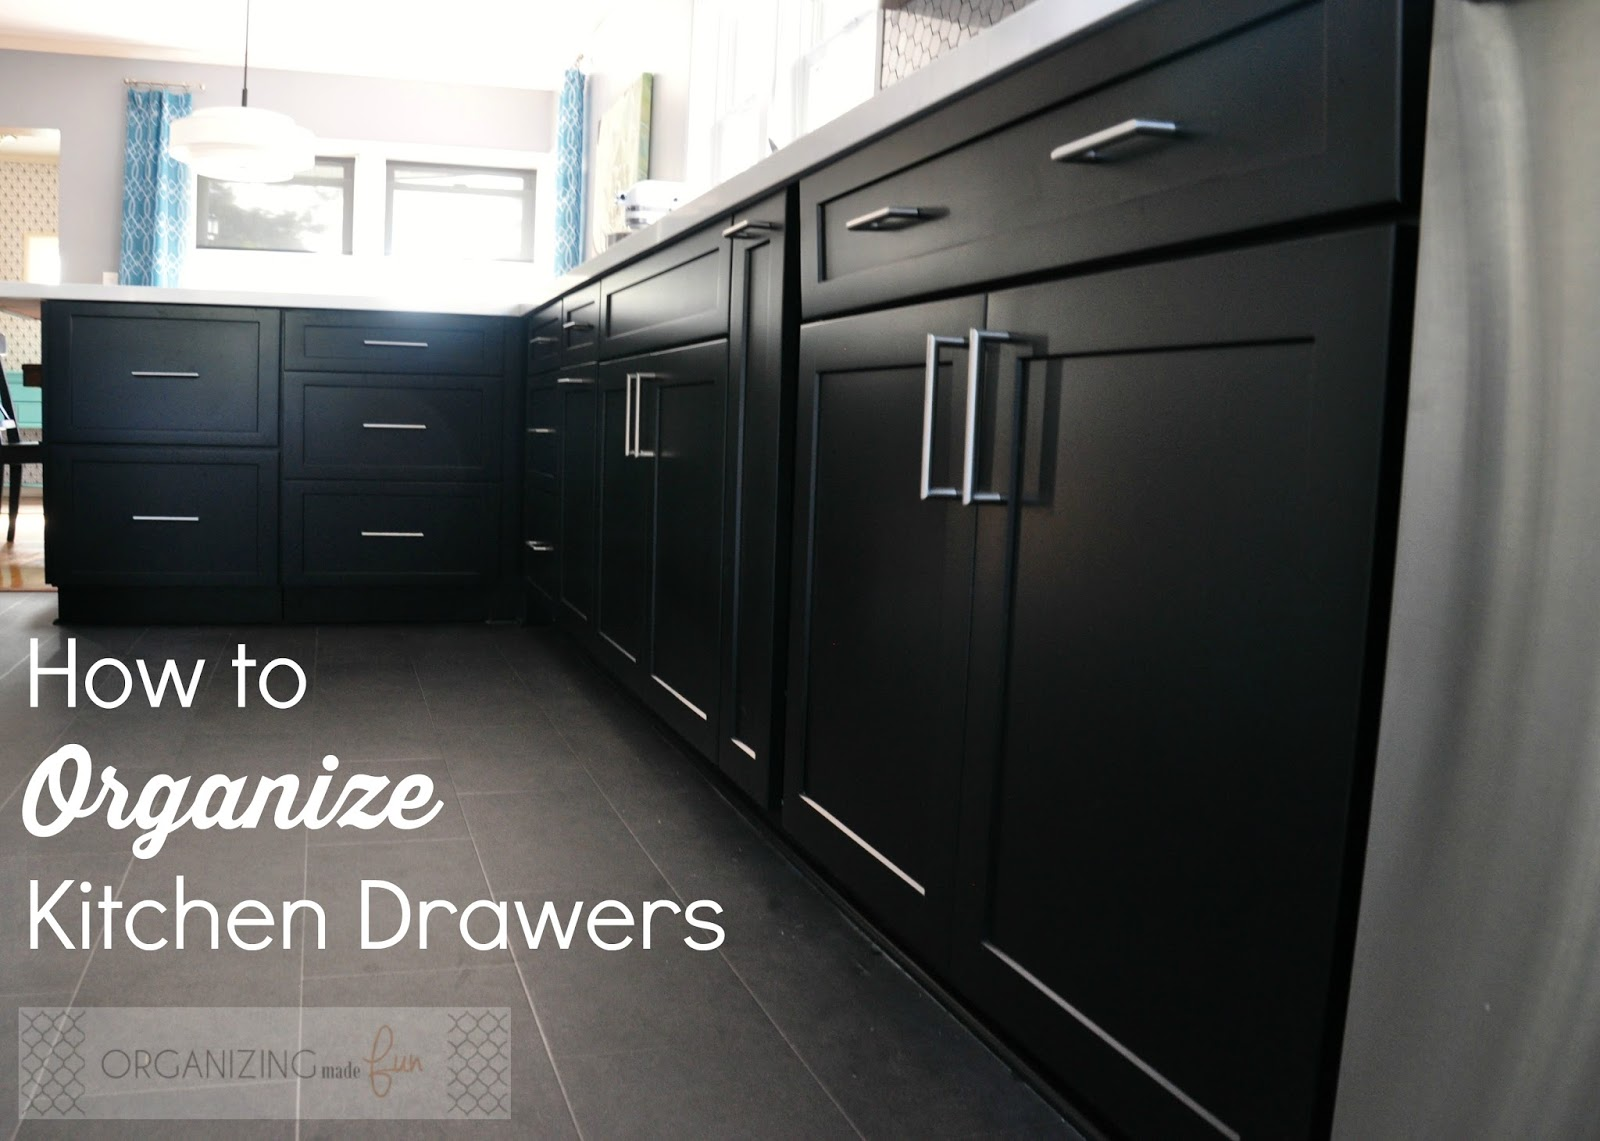 How To Organize Kitchen Drawers Organizingmadefun